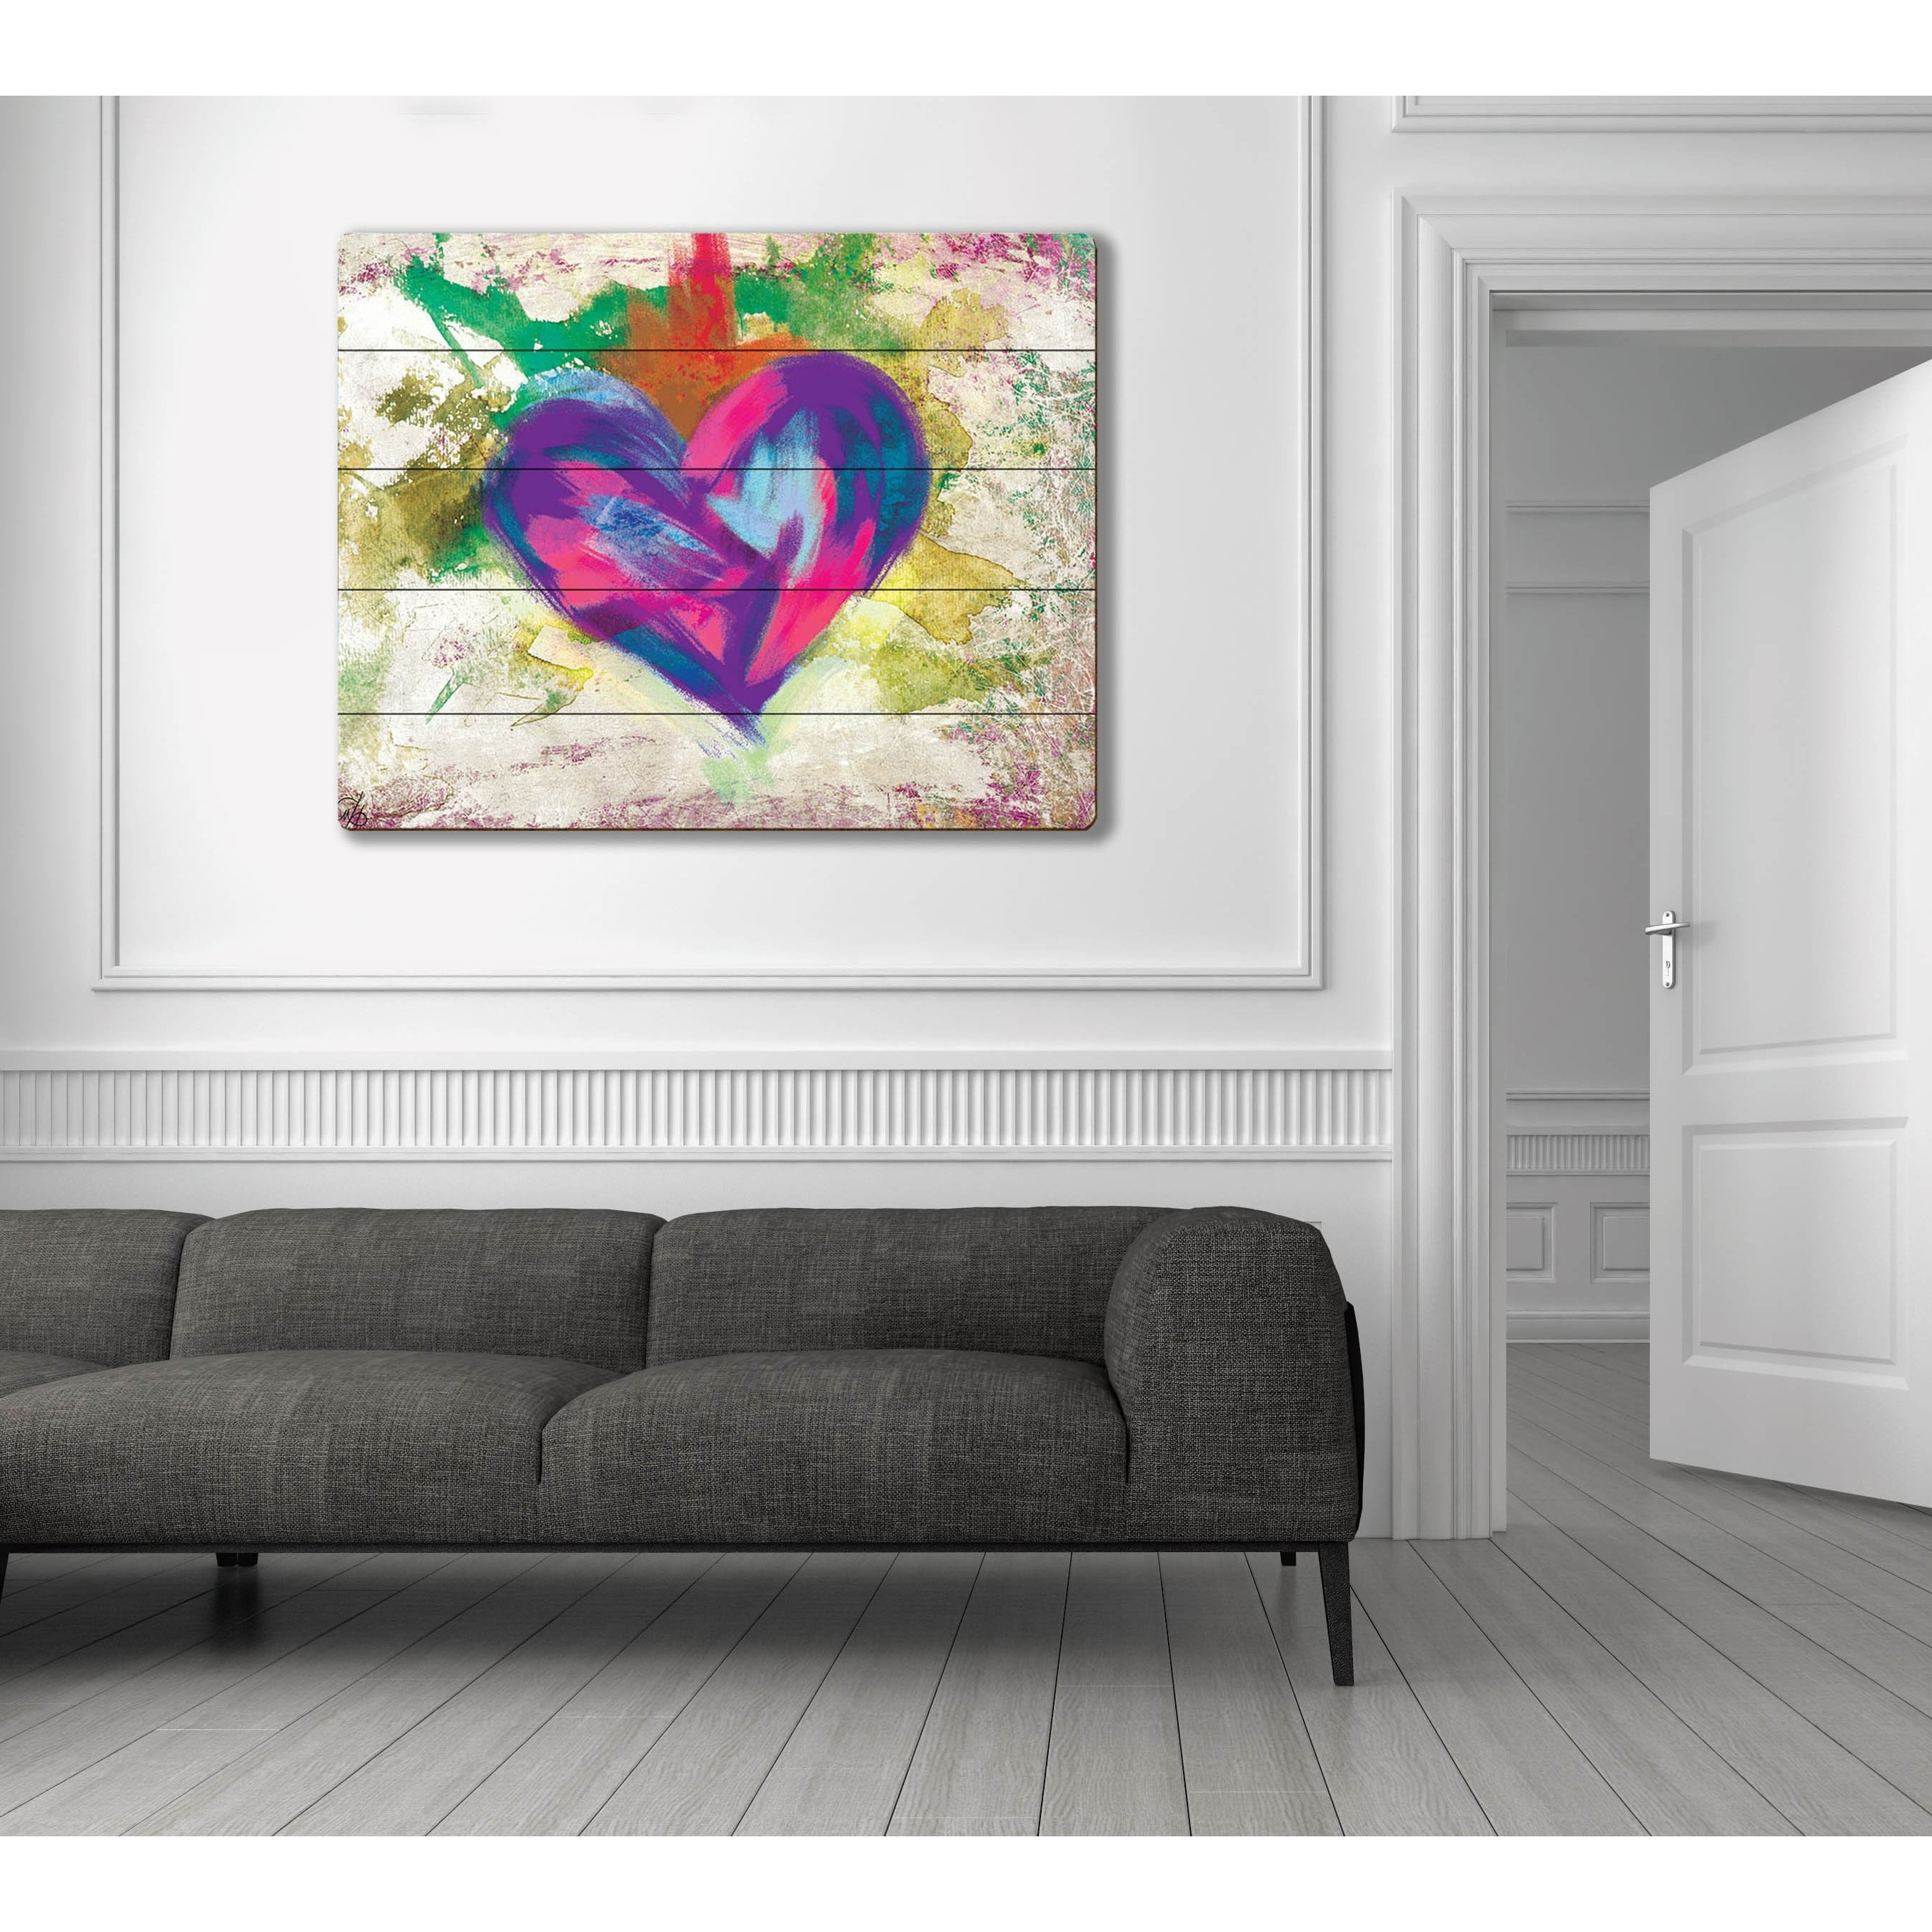 Widely Used Abstract Heart Wall Art Within Up Beat Violet Abstract Heart Wall Art On Wood – Free Shipping (View 6 of 15)